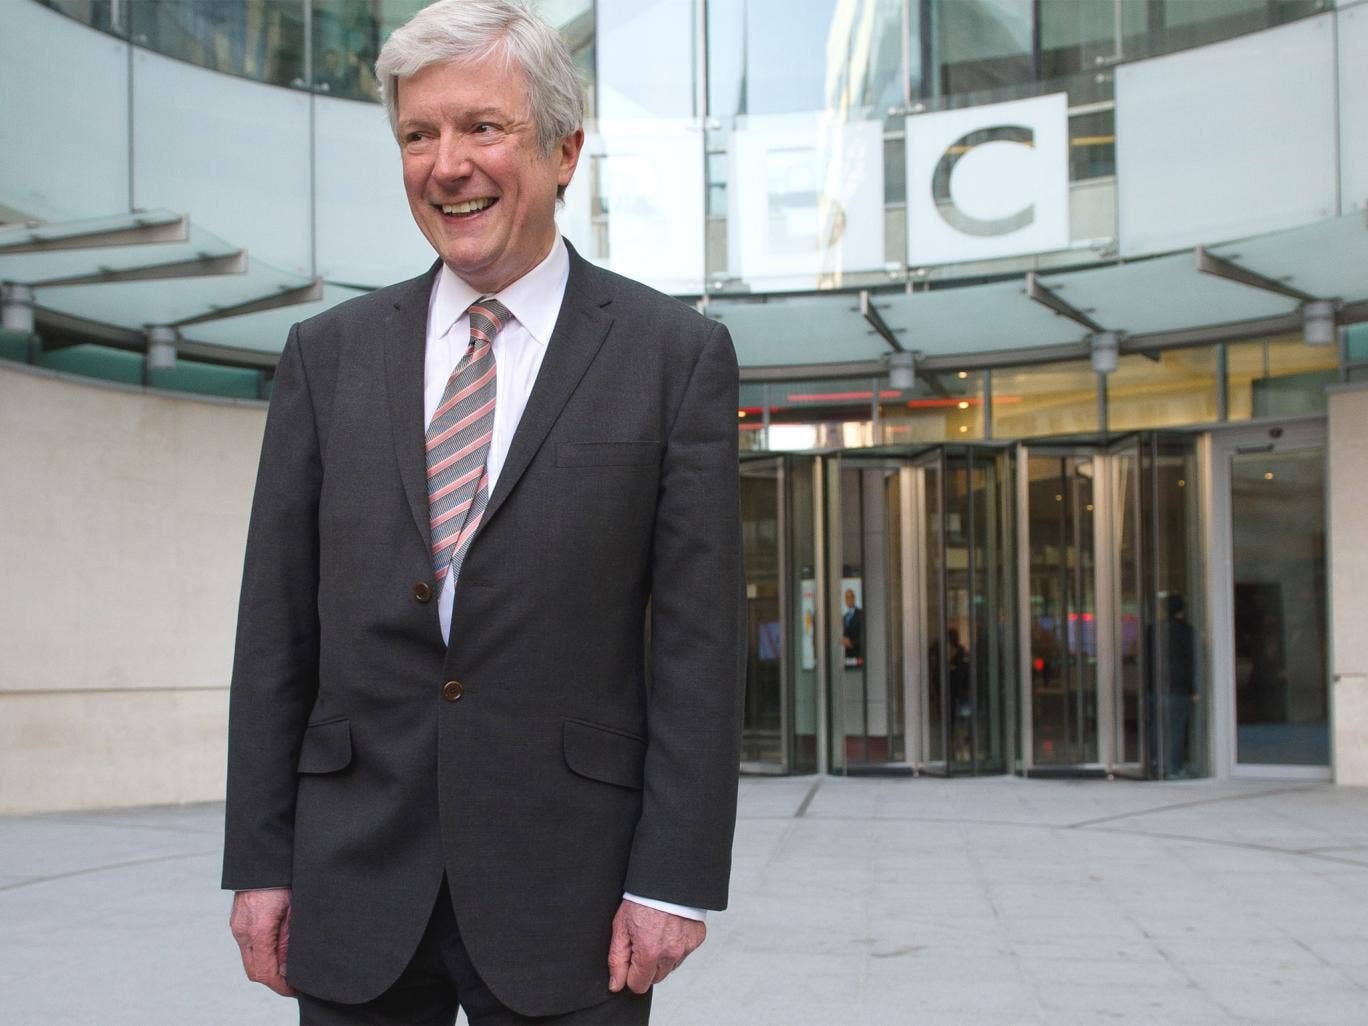 Tony Hall, Director General of the BBC, outside New Broadcasting House